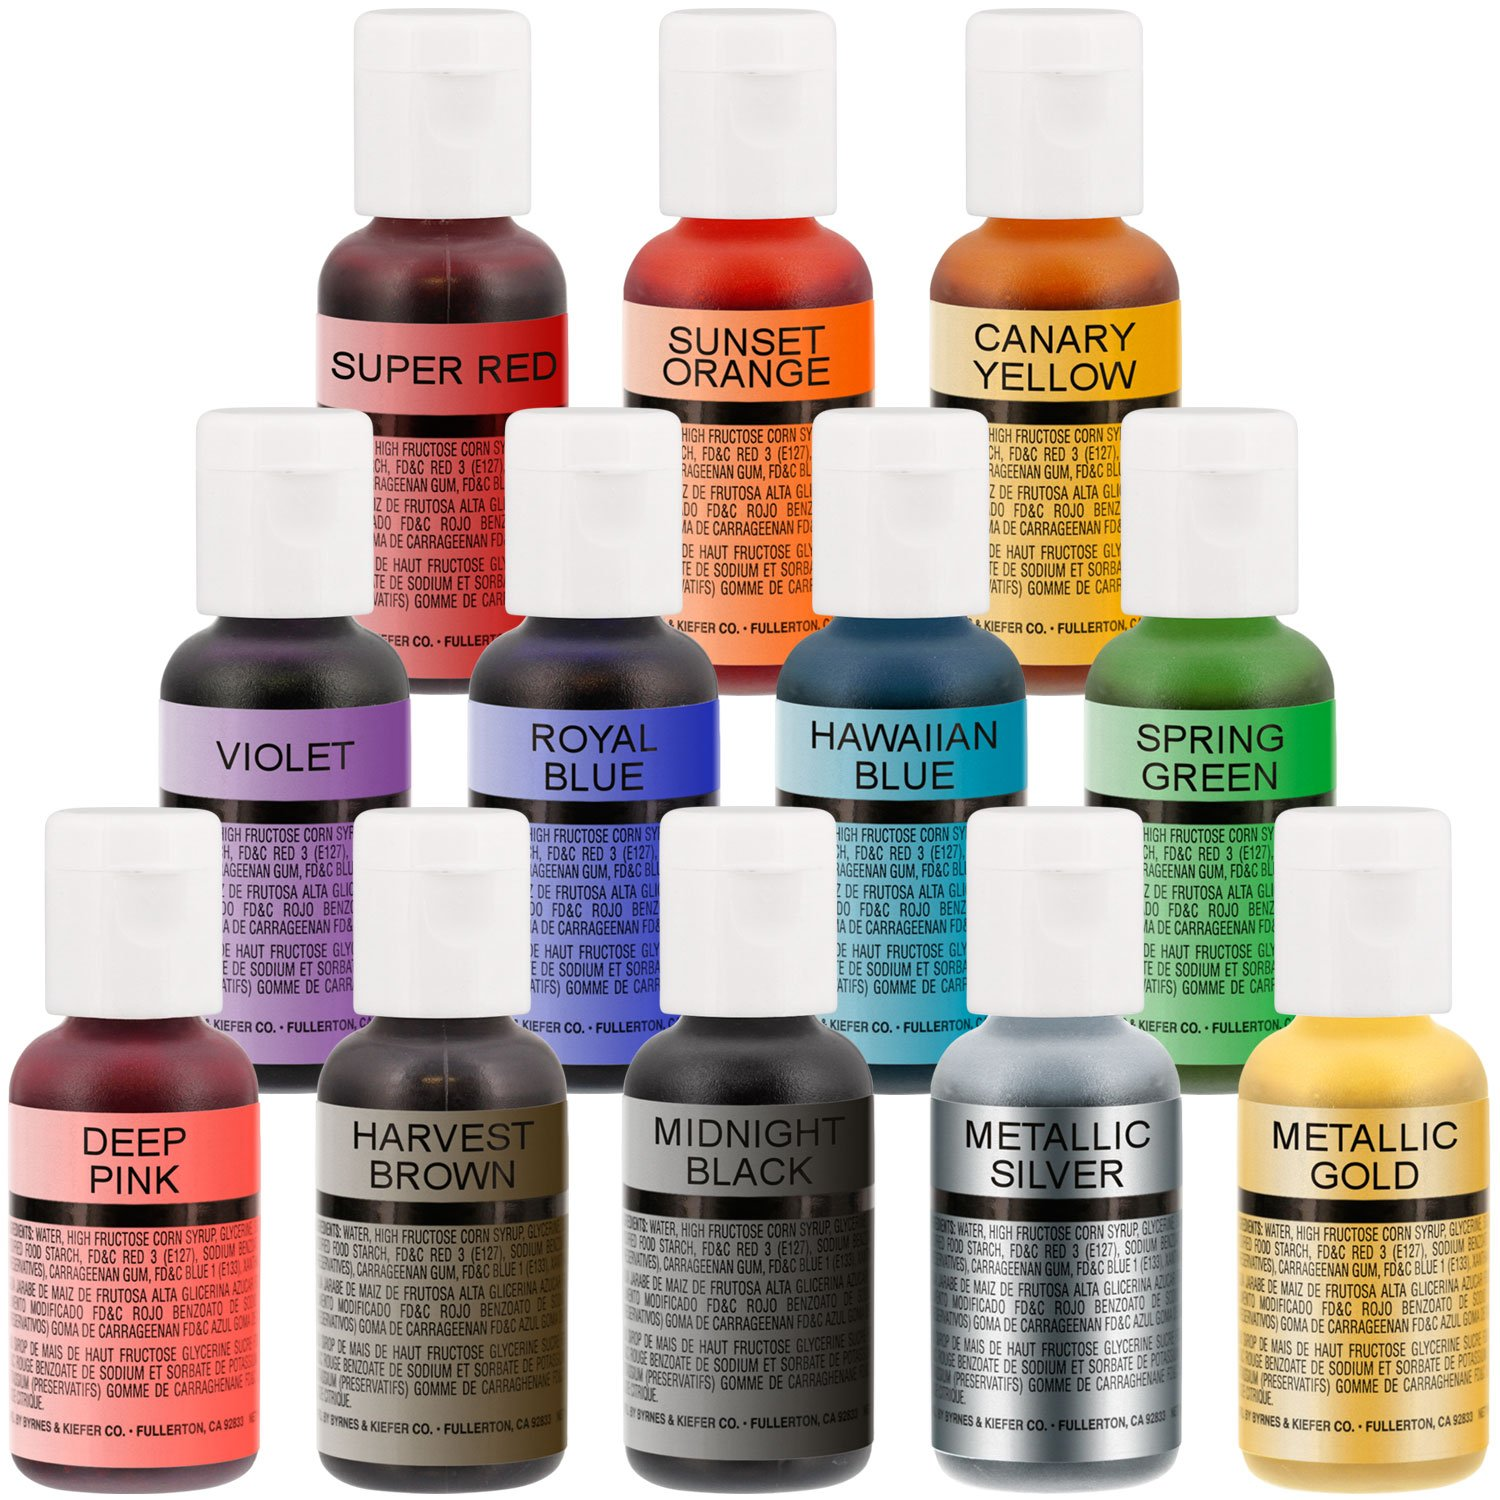 3 Airbrush Master Airbrush Cake Decorating Airbrushing System Kit with Set of 12 Chefmaster Food Colors, Gravity & Siphon Feed Airbrushes, Air Compressor - Decorate Cakes, Cupcakes, Cookies, Desserts by Master Airbrush (Image #6)